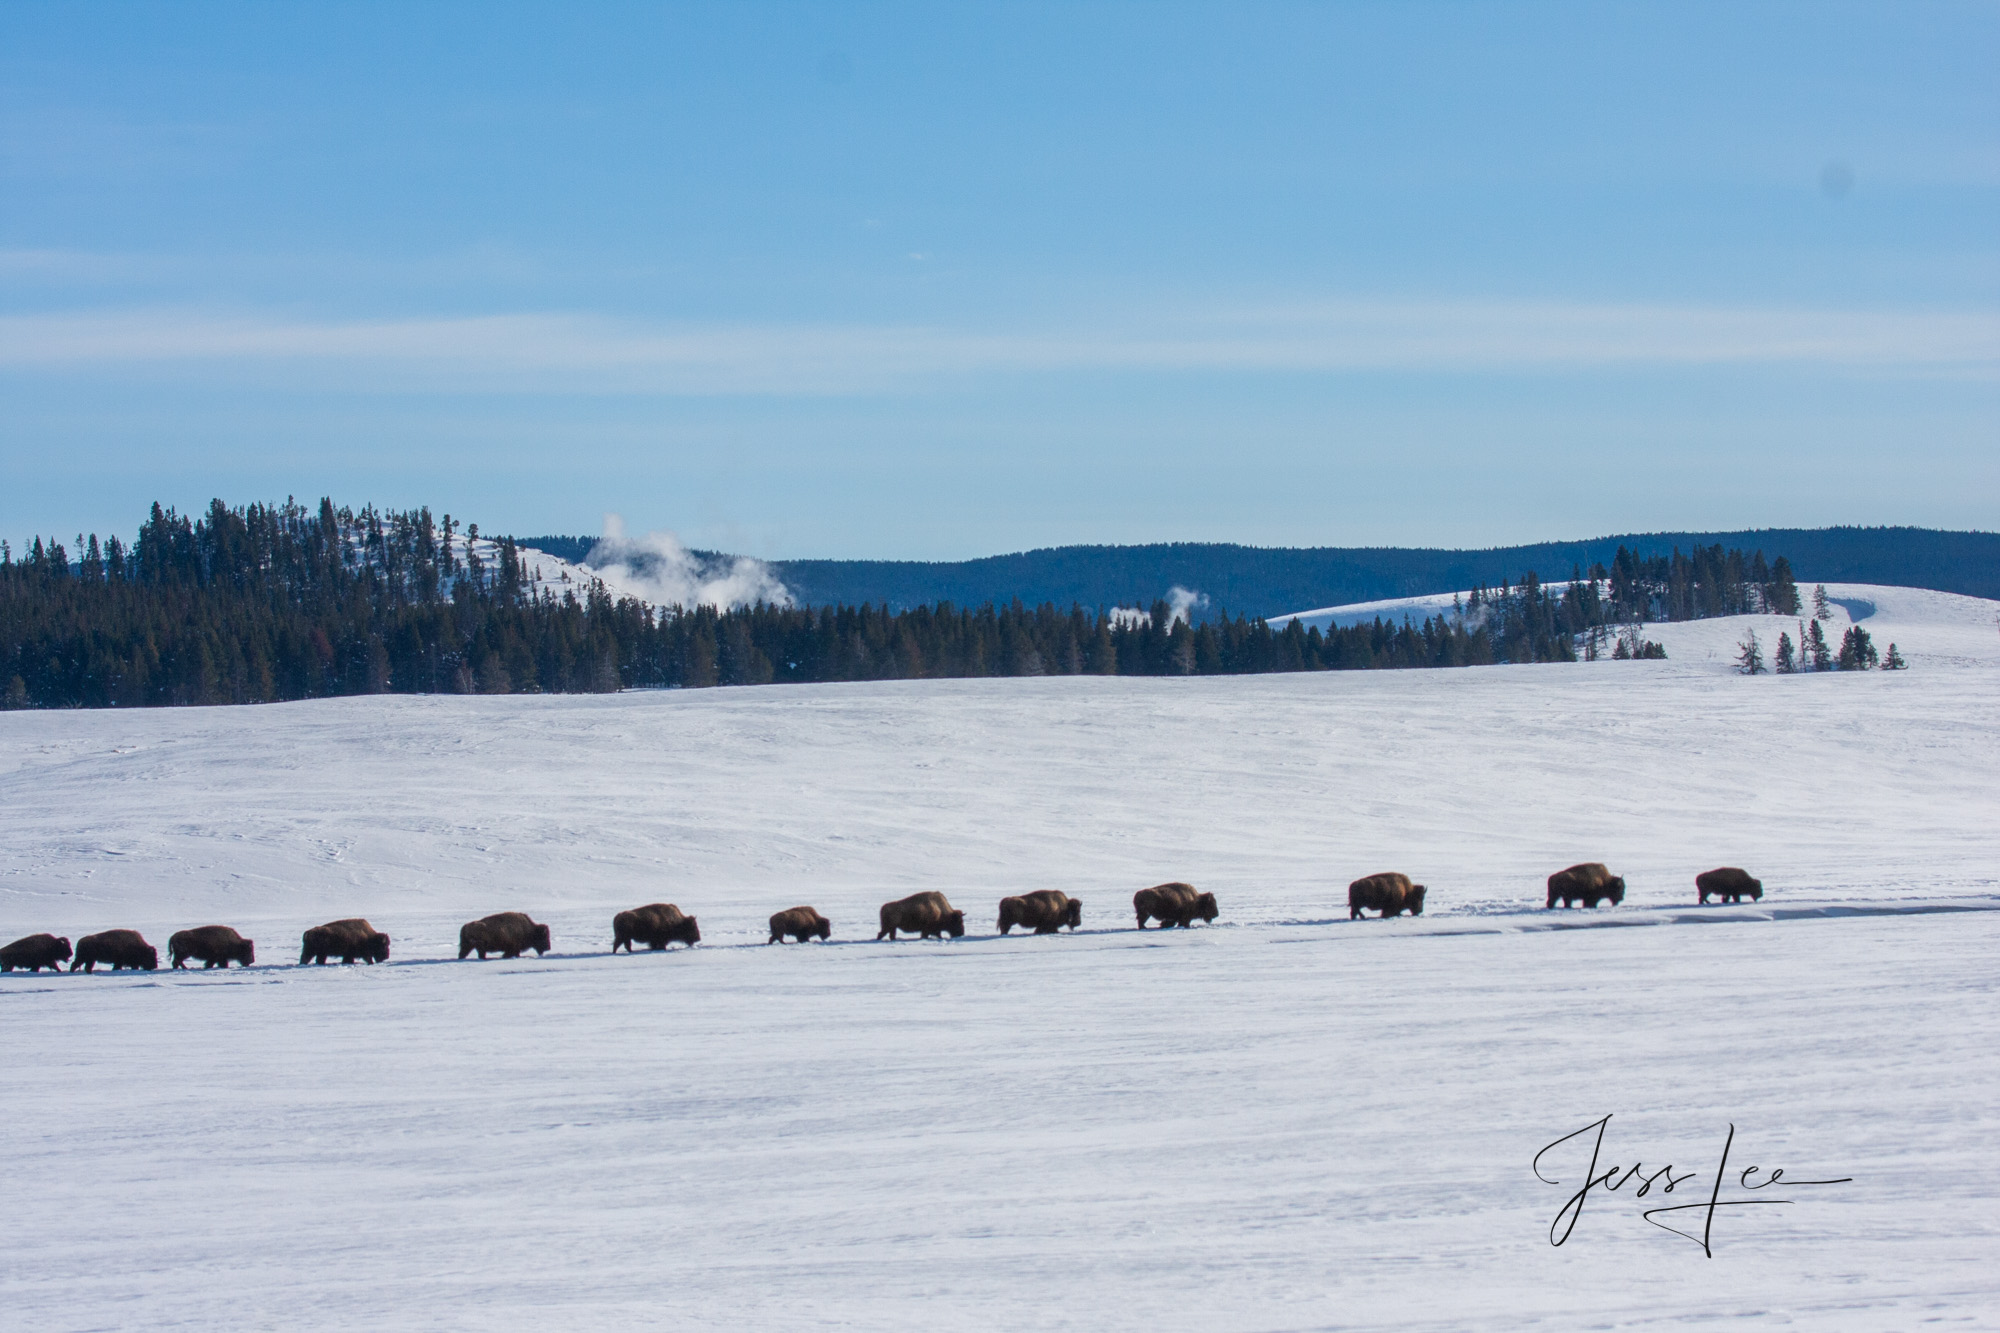 Yellowstone bison in winter herd, national park,, photo